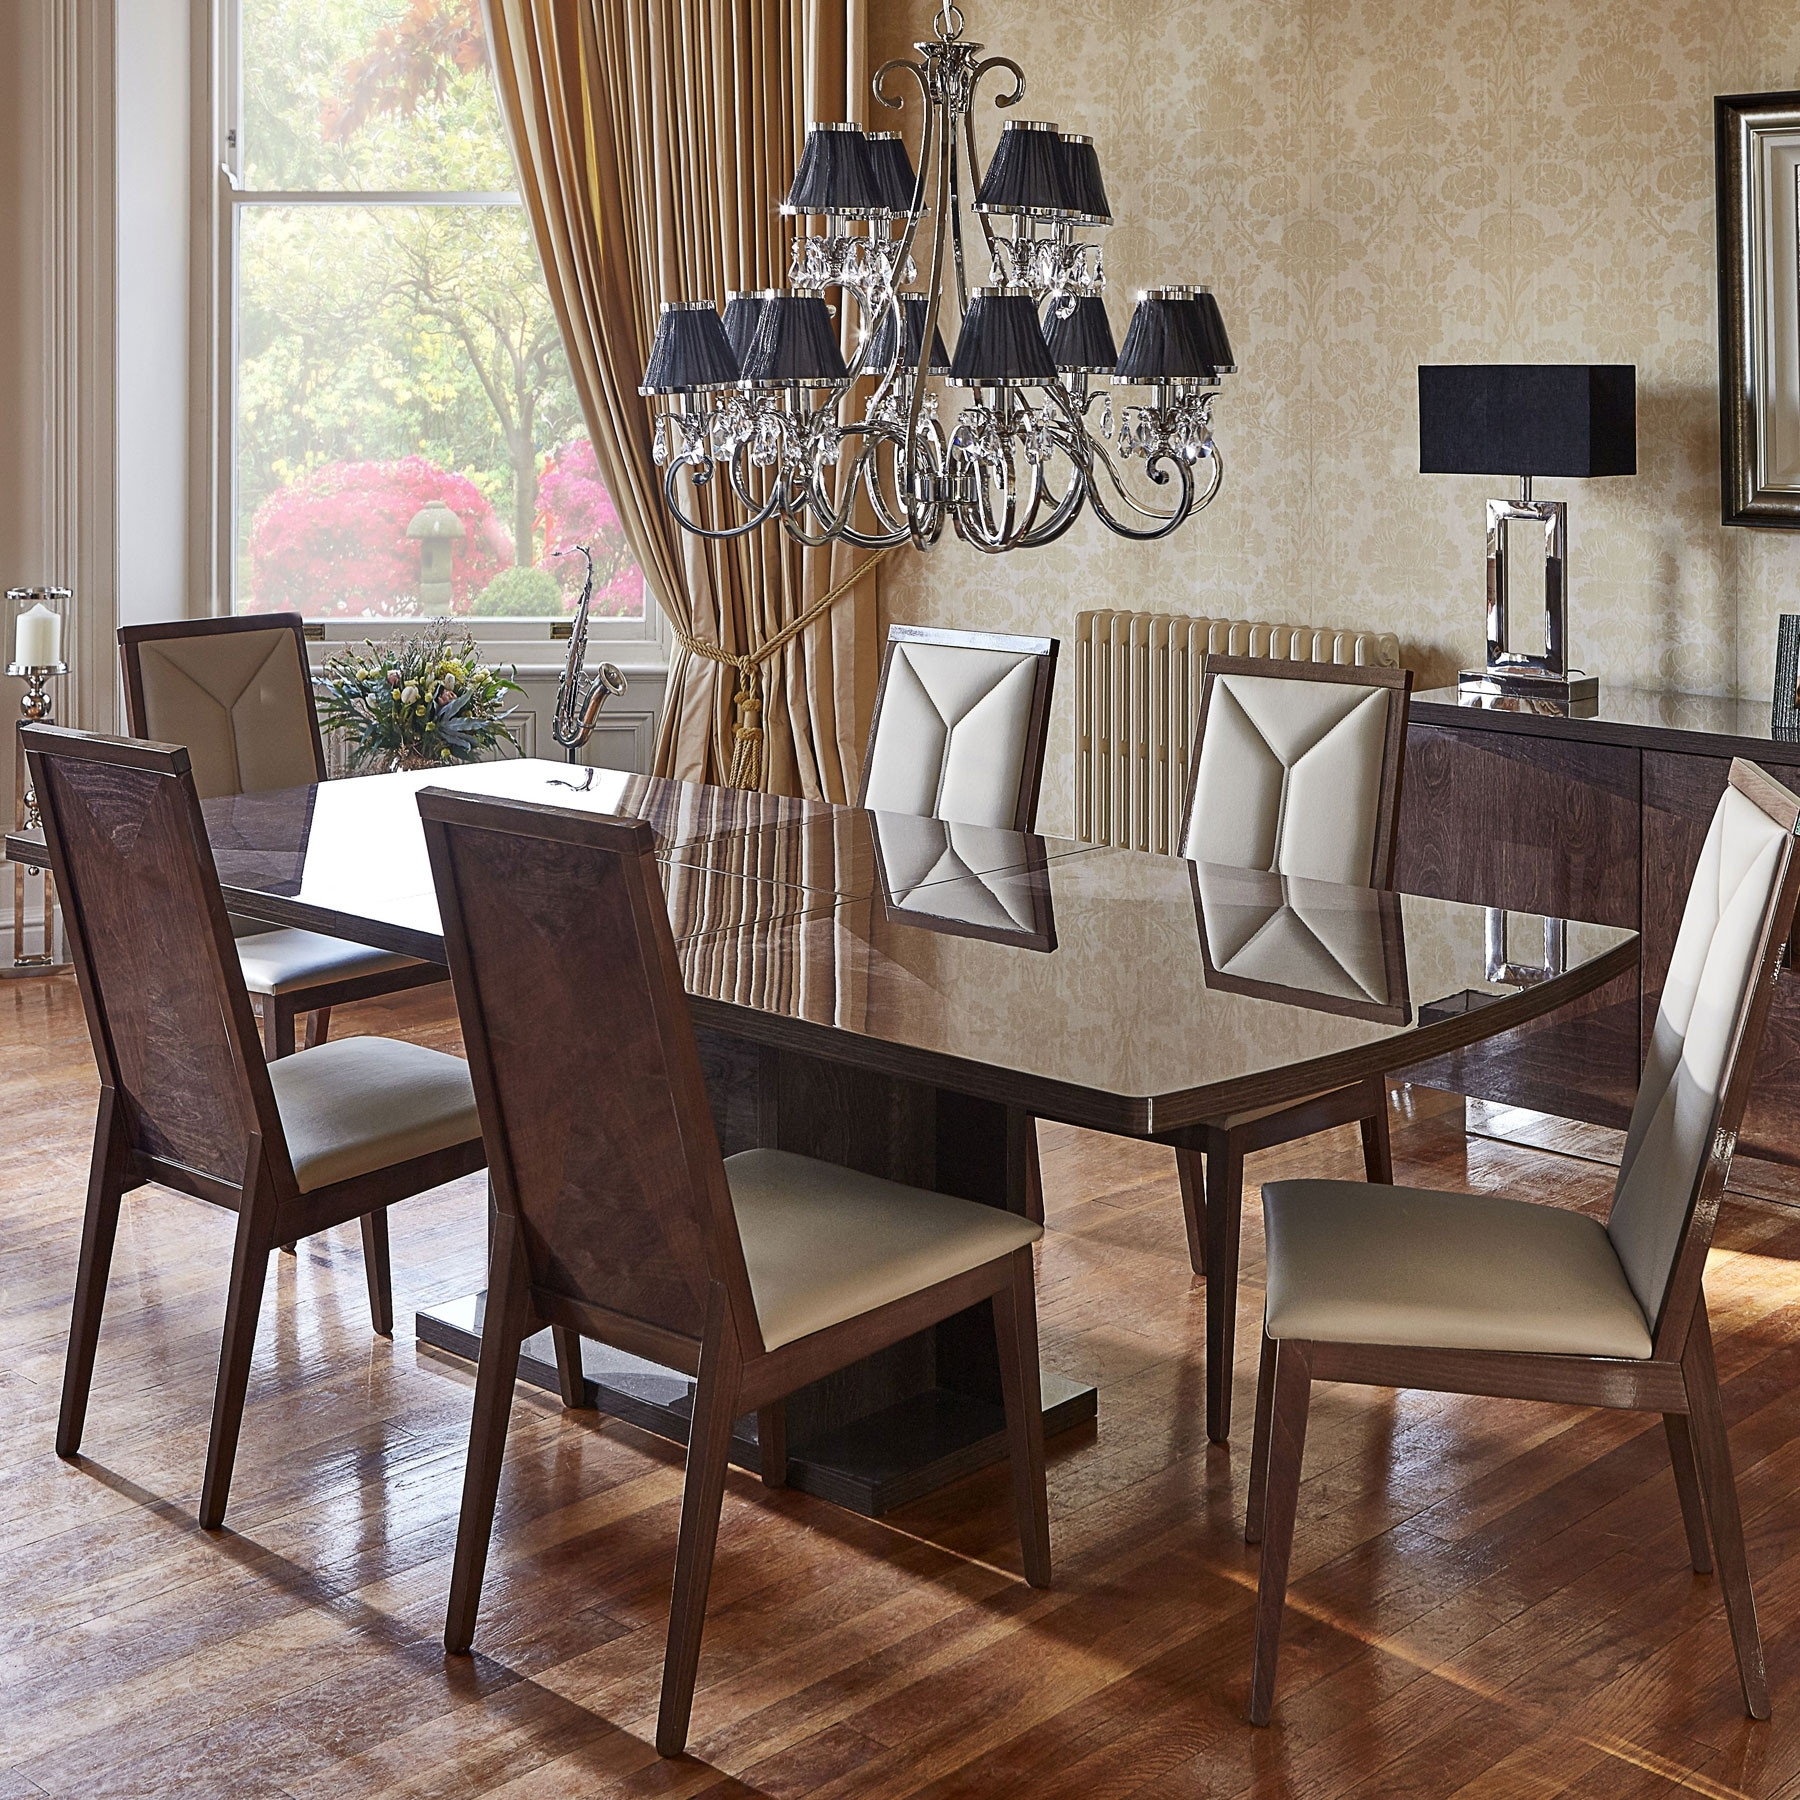 Extending Dining Tables 6 Chairs Inside Most Current Vogue High Gloss Extending Dining Table & 6 Chairs (View 10 of 25)